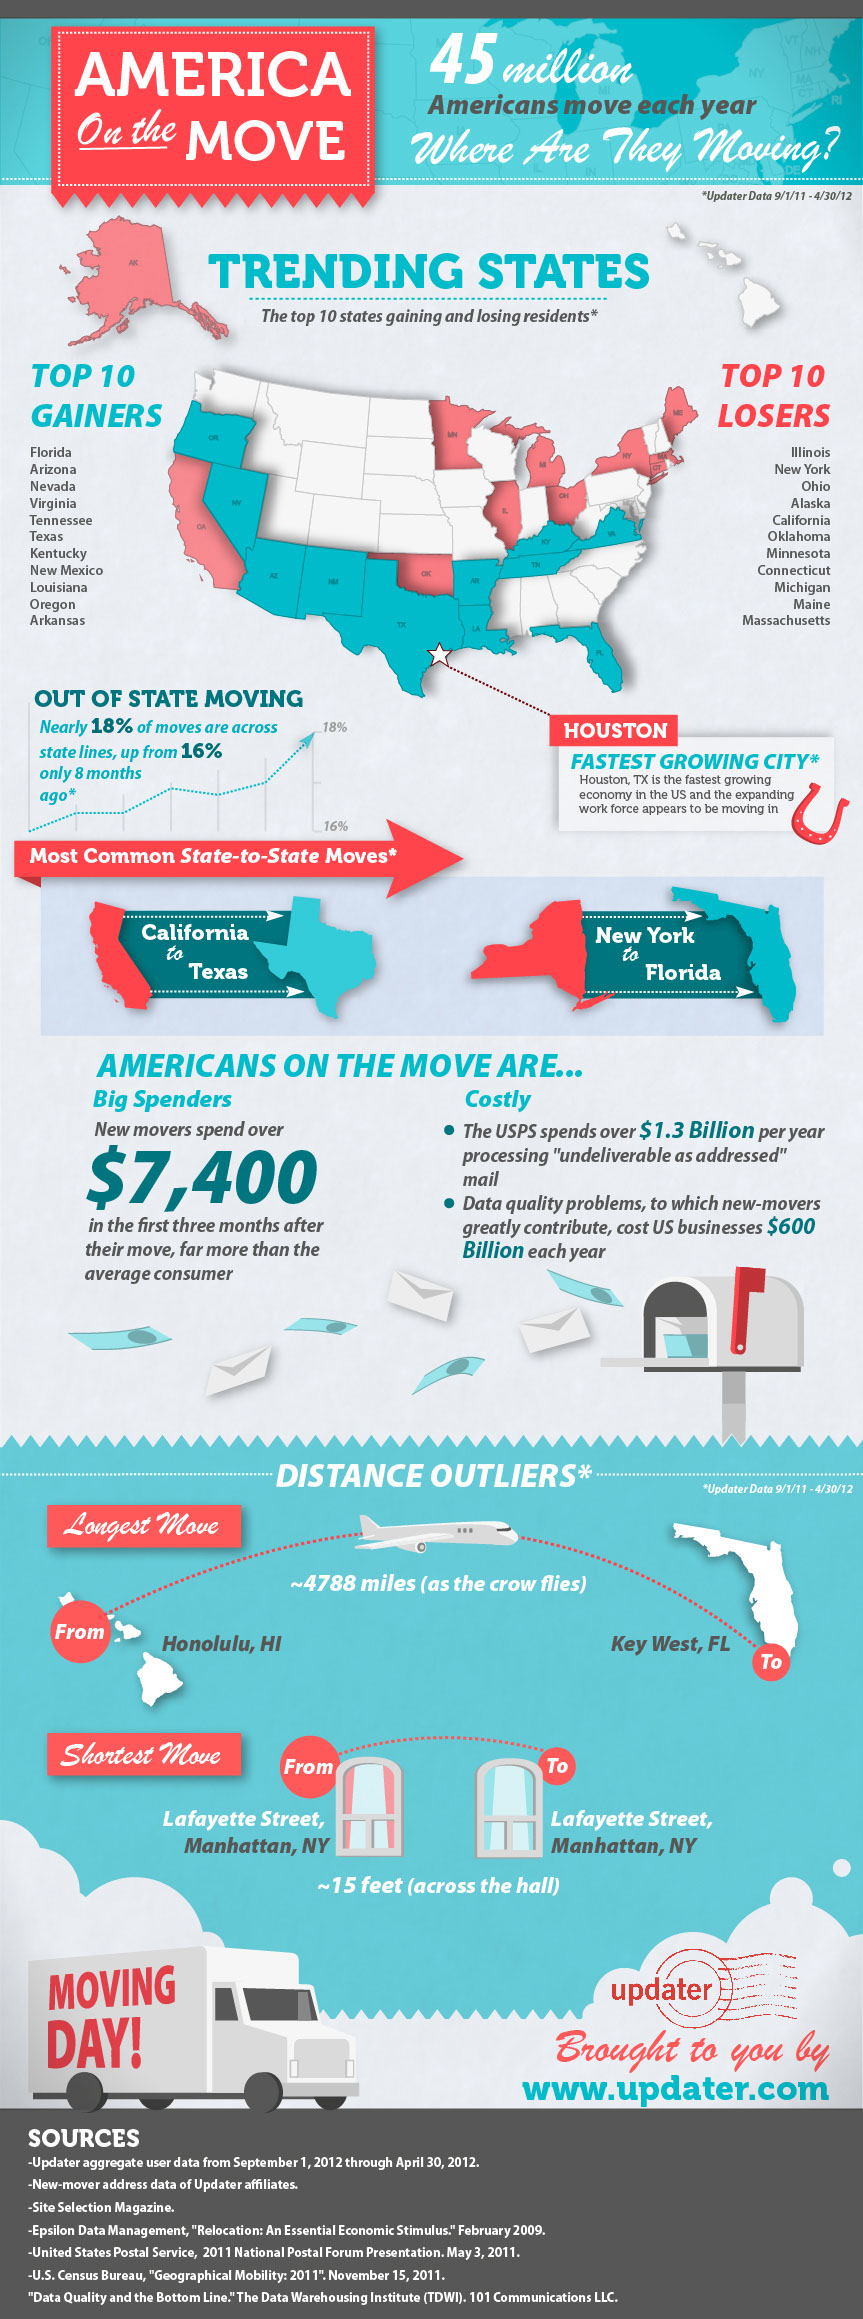 America-On-The-Move-infographic